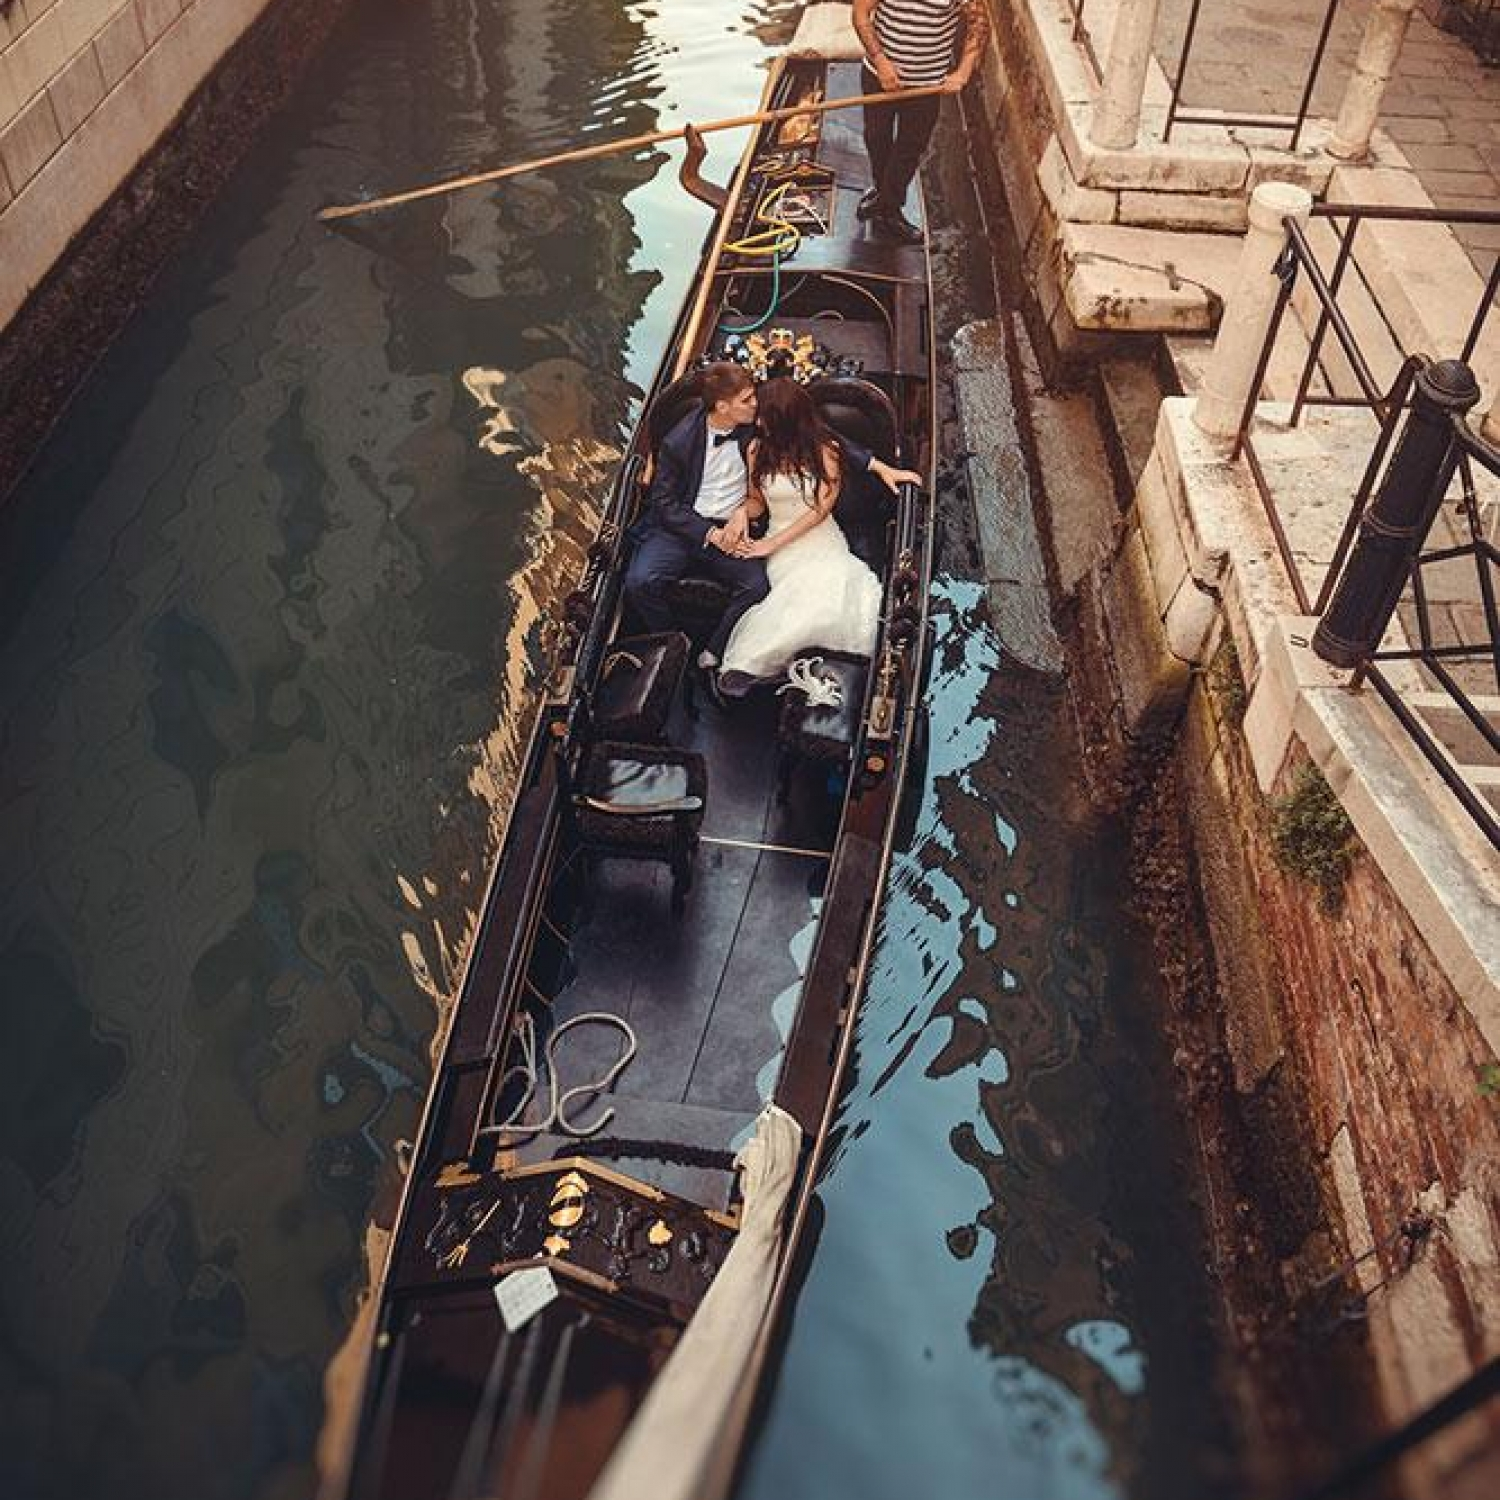 Pre-wedding photography on gondola in Venice